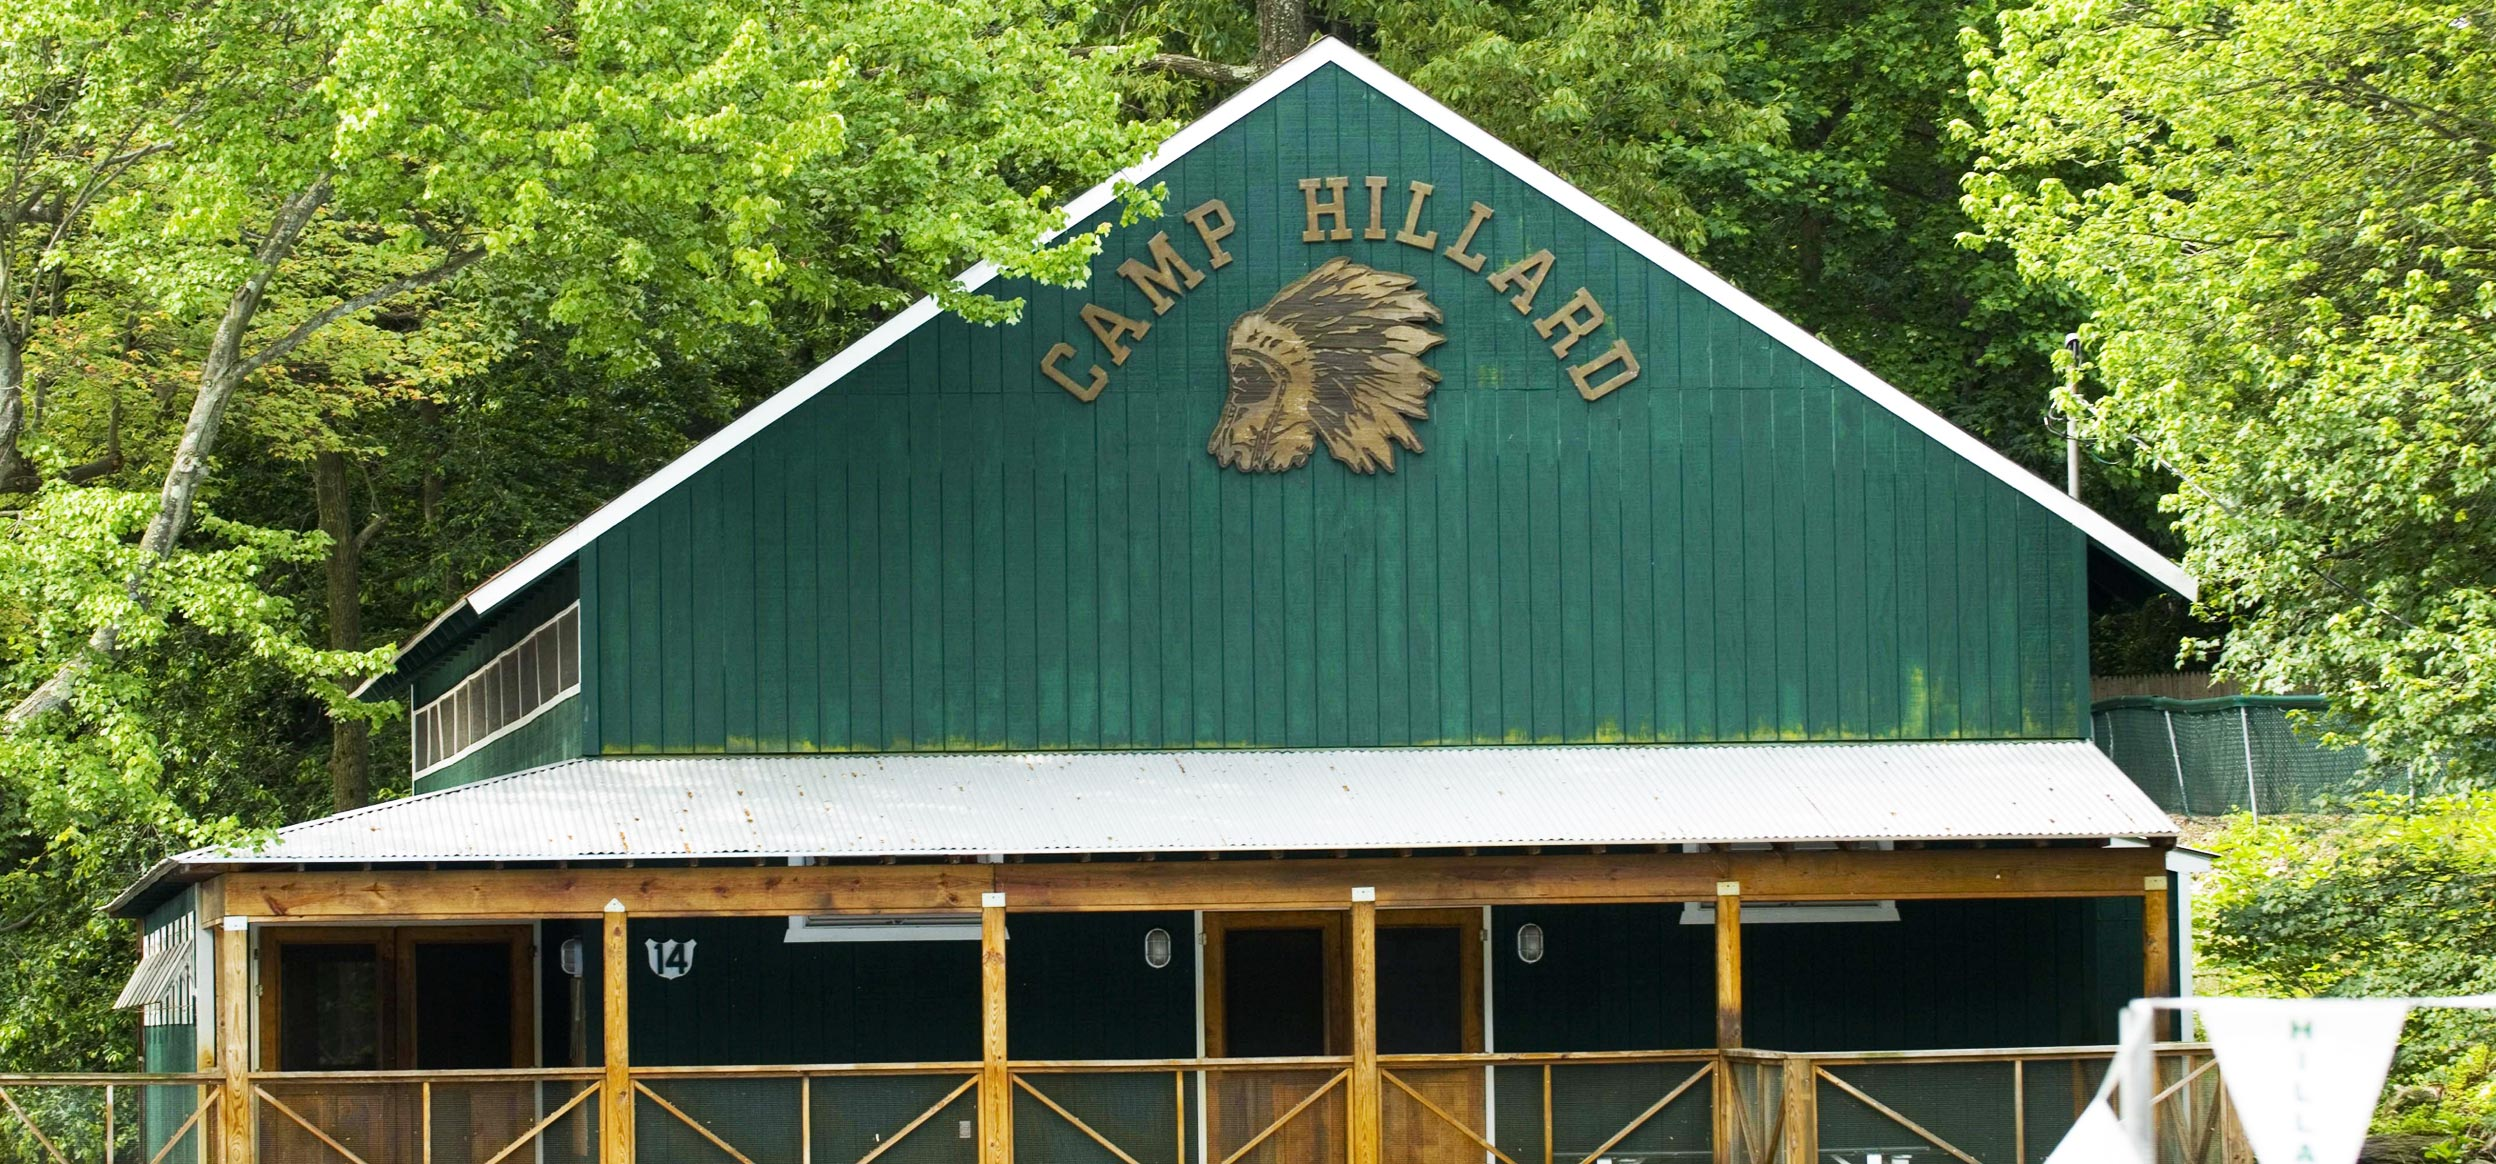 The Camp Hillard Facility